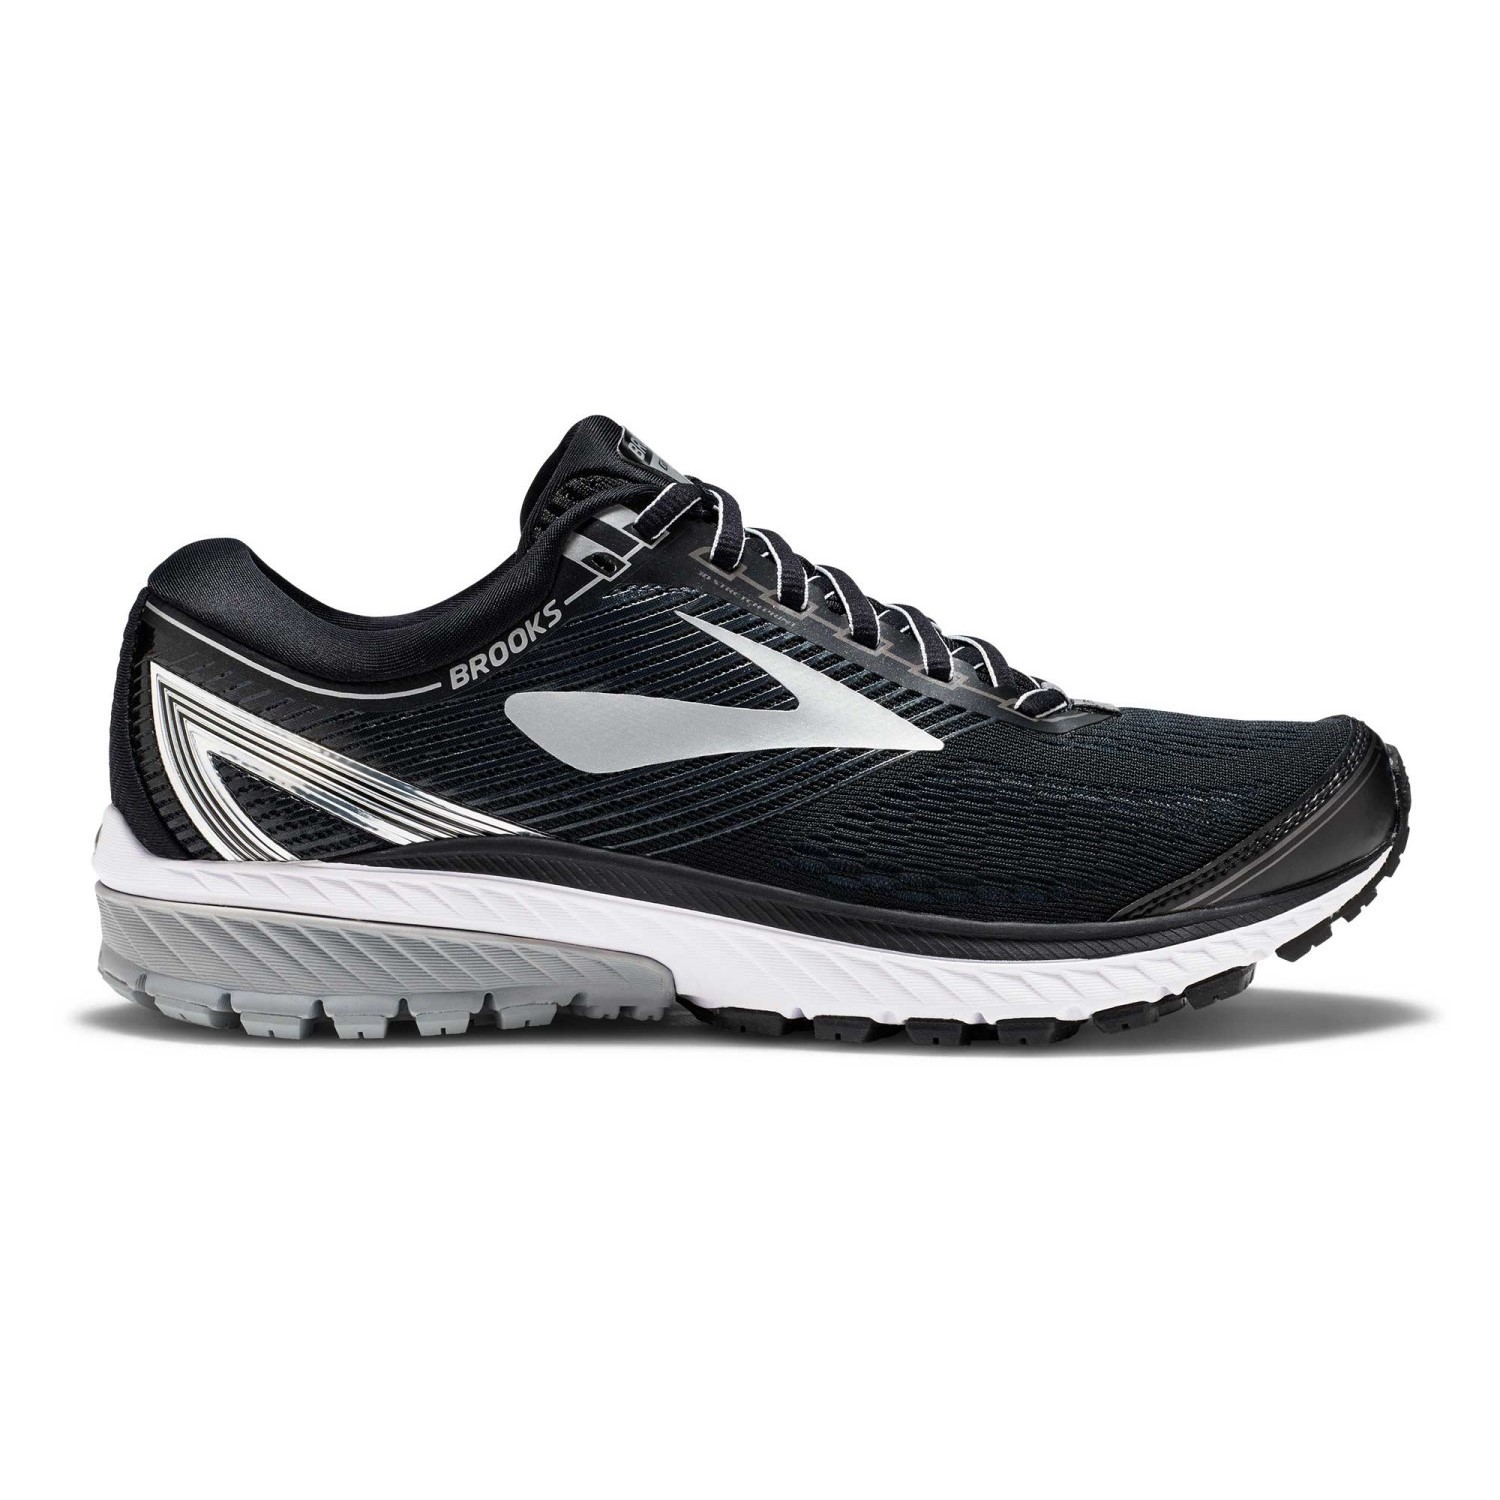 Brooks Ghost 10 - Womens Running Shoes